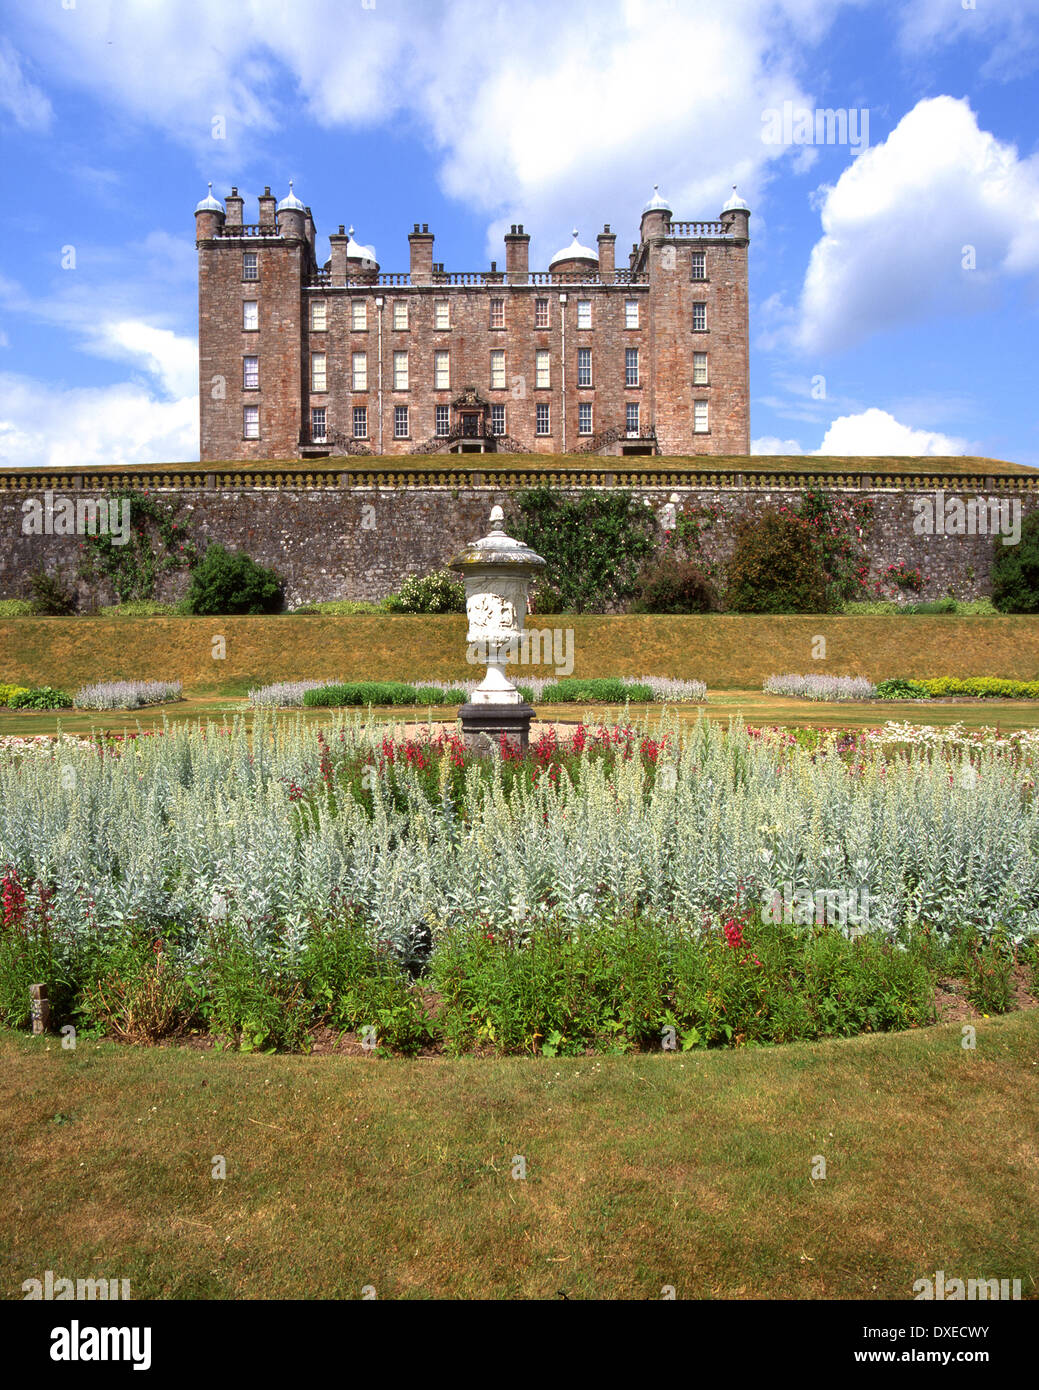 Drumlanrig Castle or Pink Palace, a renaissance country house nr Thornhill, 17th century.Dumfries-shire. - Stock Image